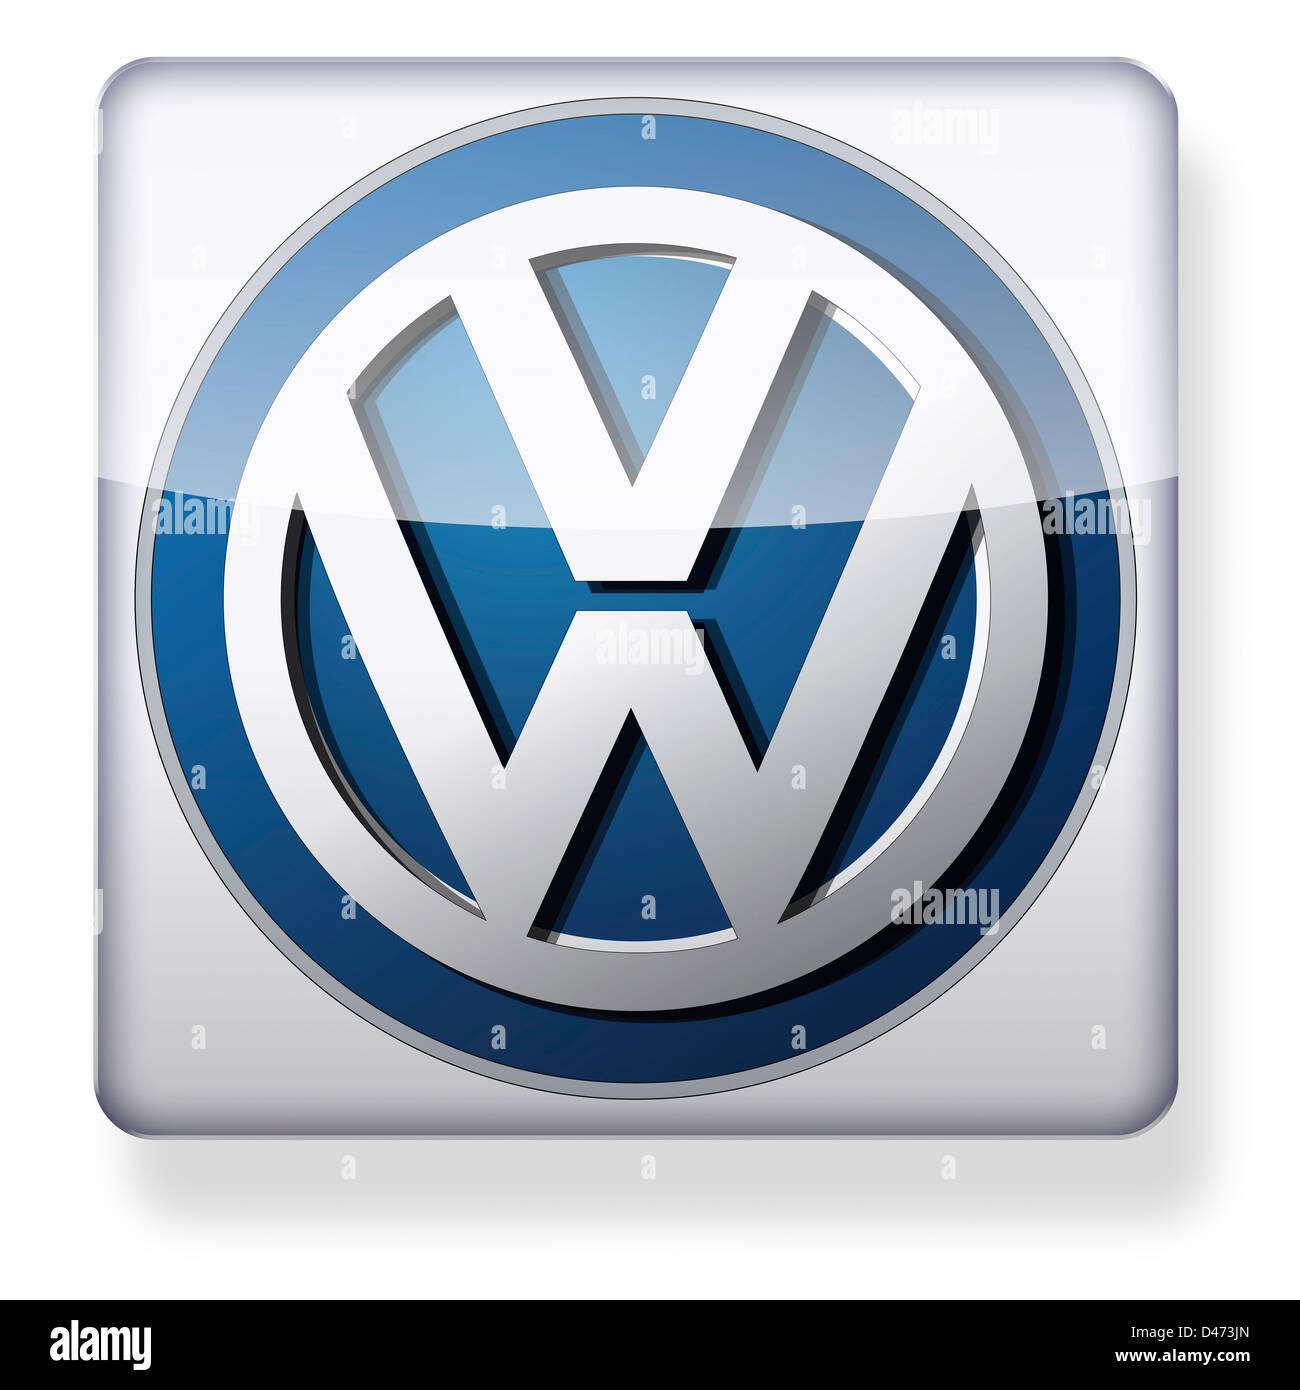 VW logo as an app icon. Clipping path included. - Stock Image